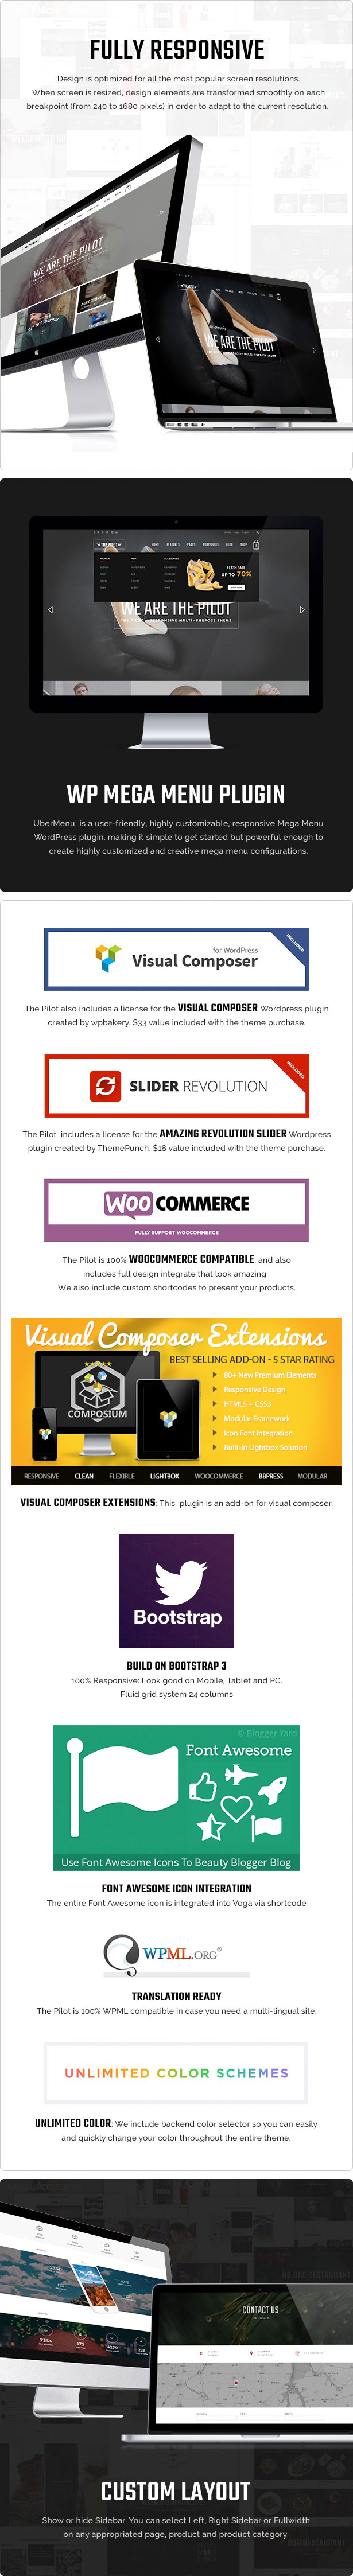 Wordpress Woo General